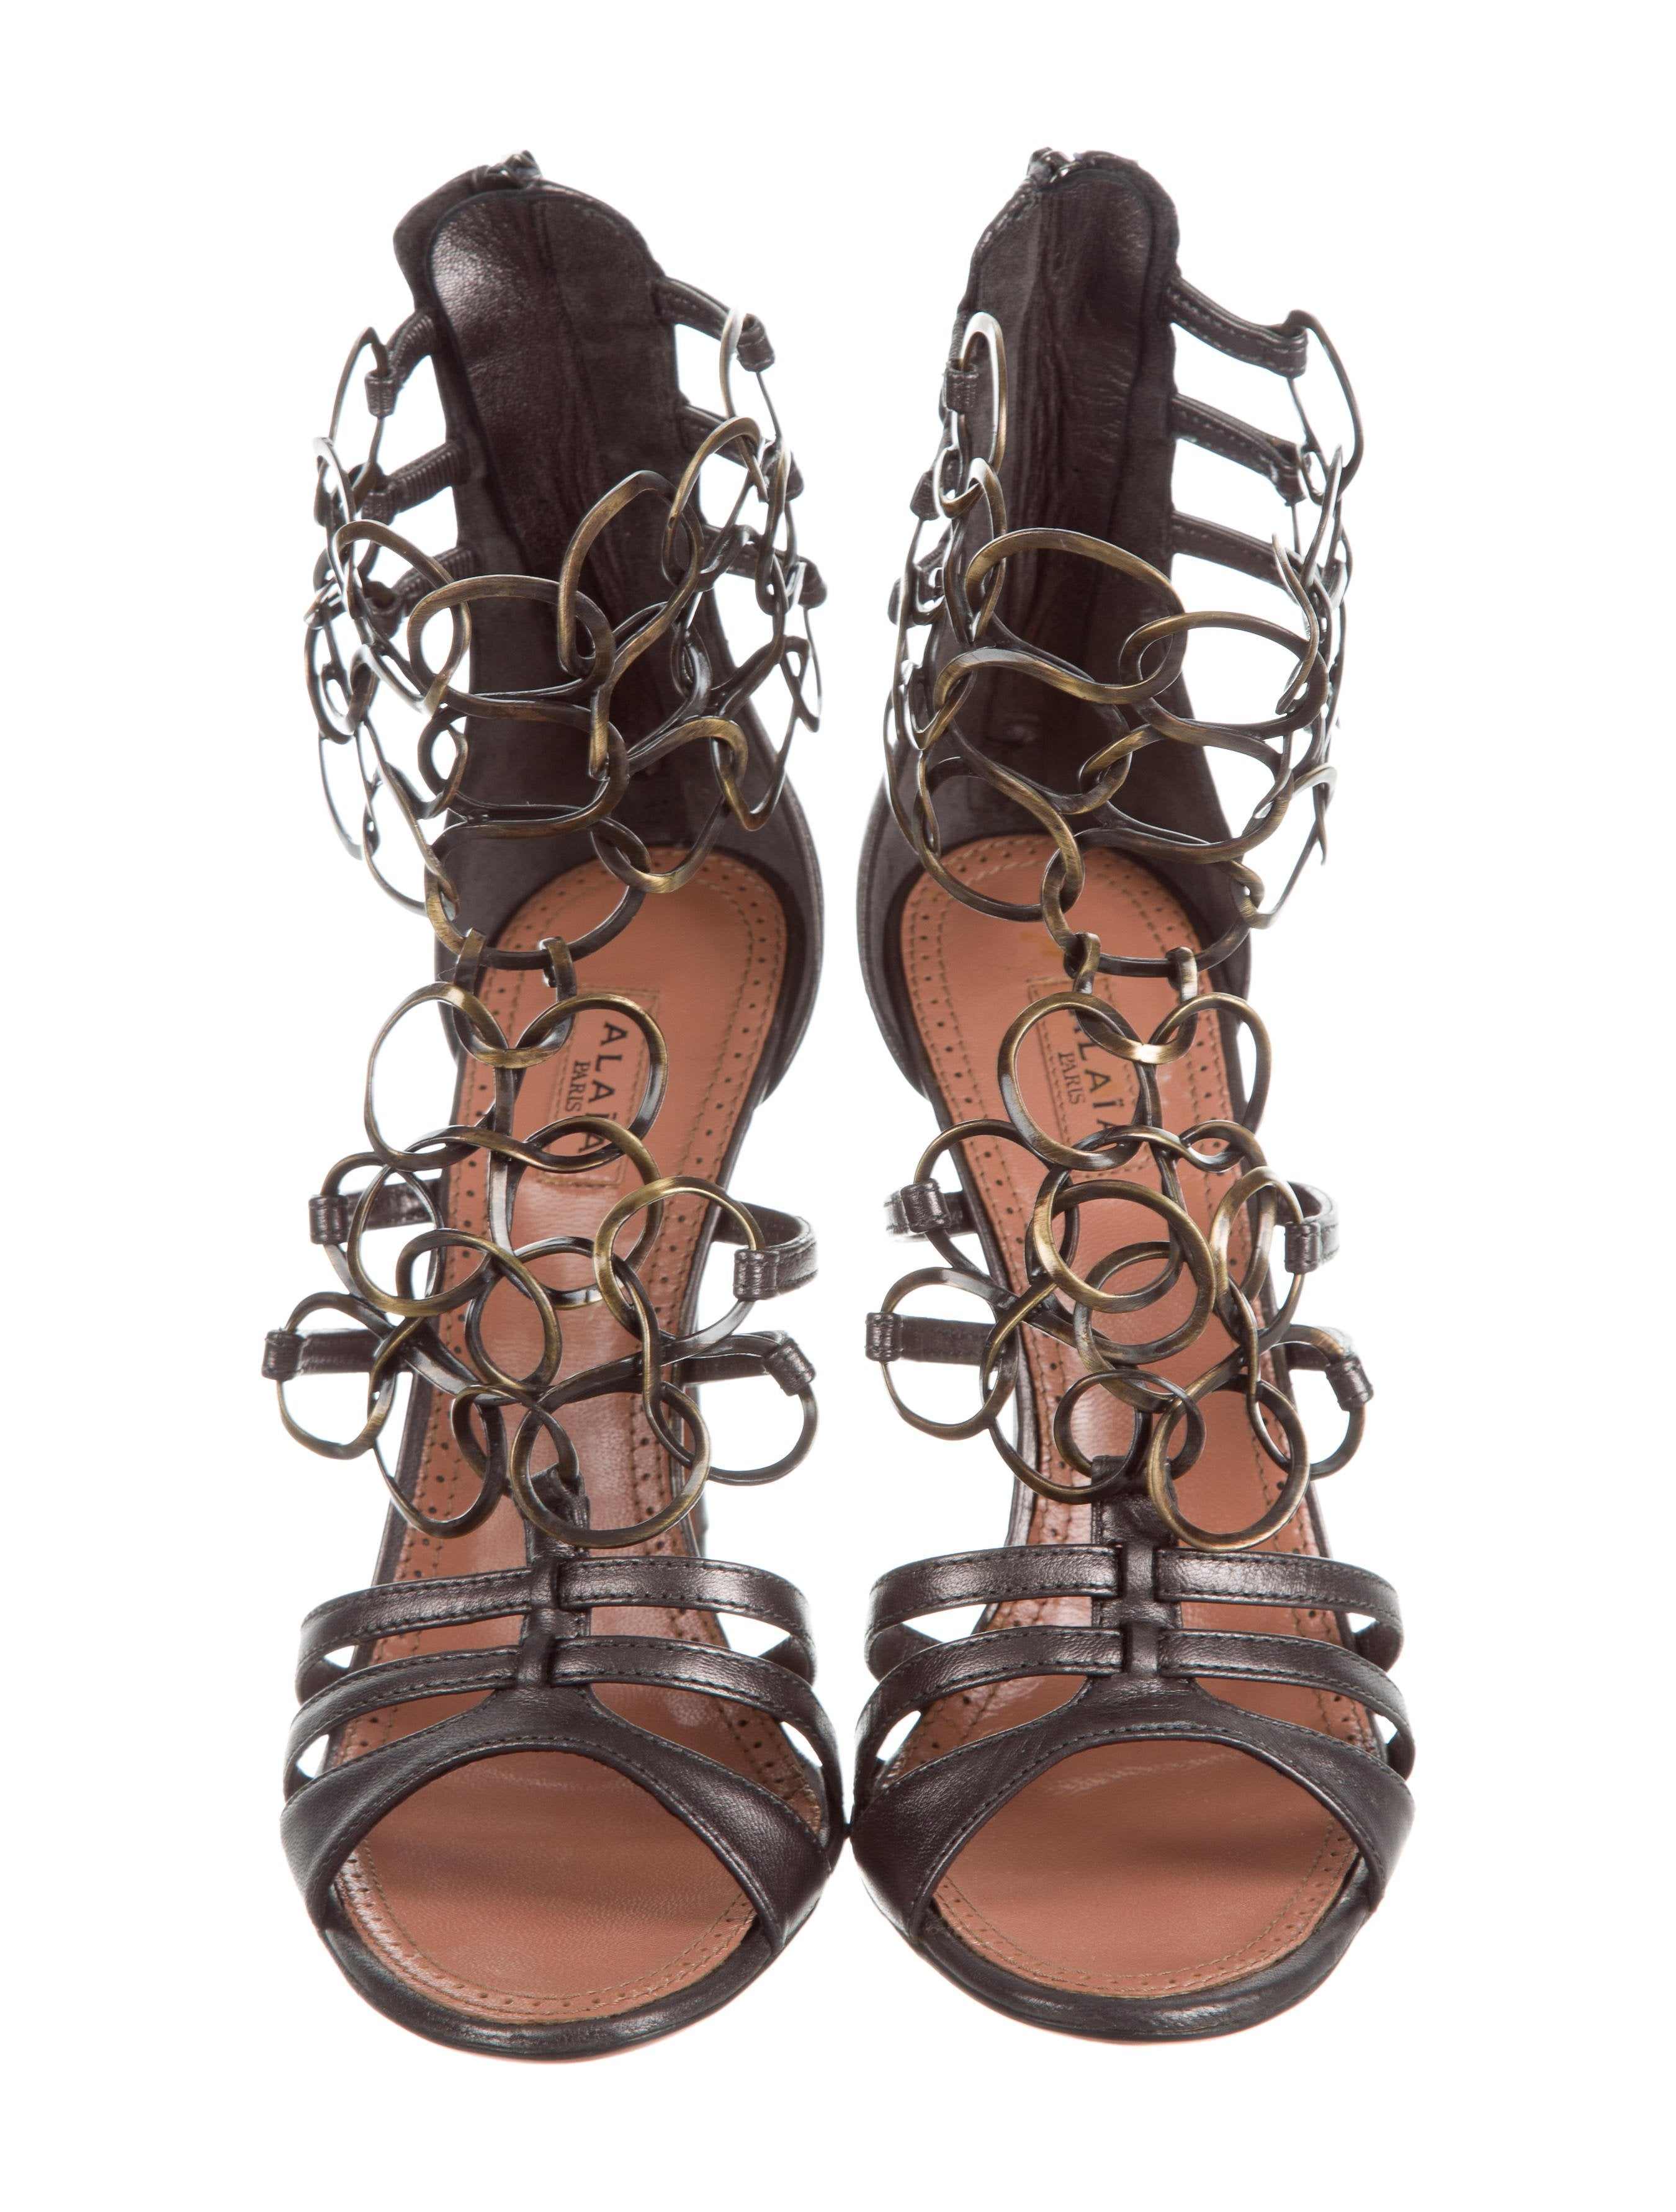 Alaïa Embellished Multistrap Sandals w/ Tags real online shop for cheap price free shipping professional sale new styles outlet latest HEqQN